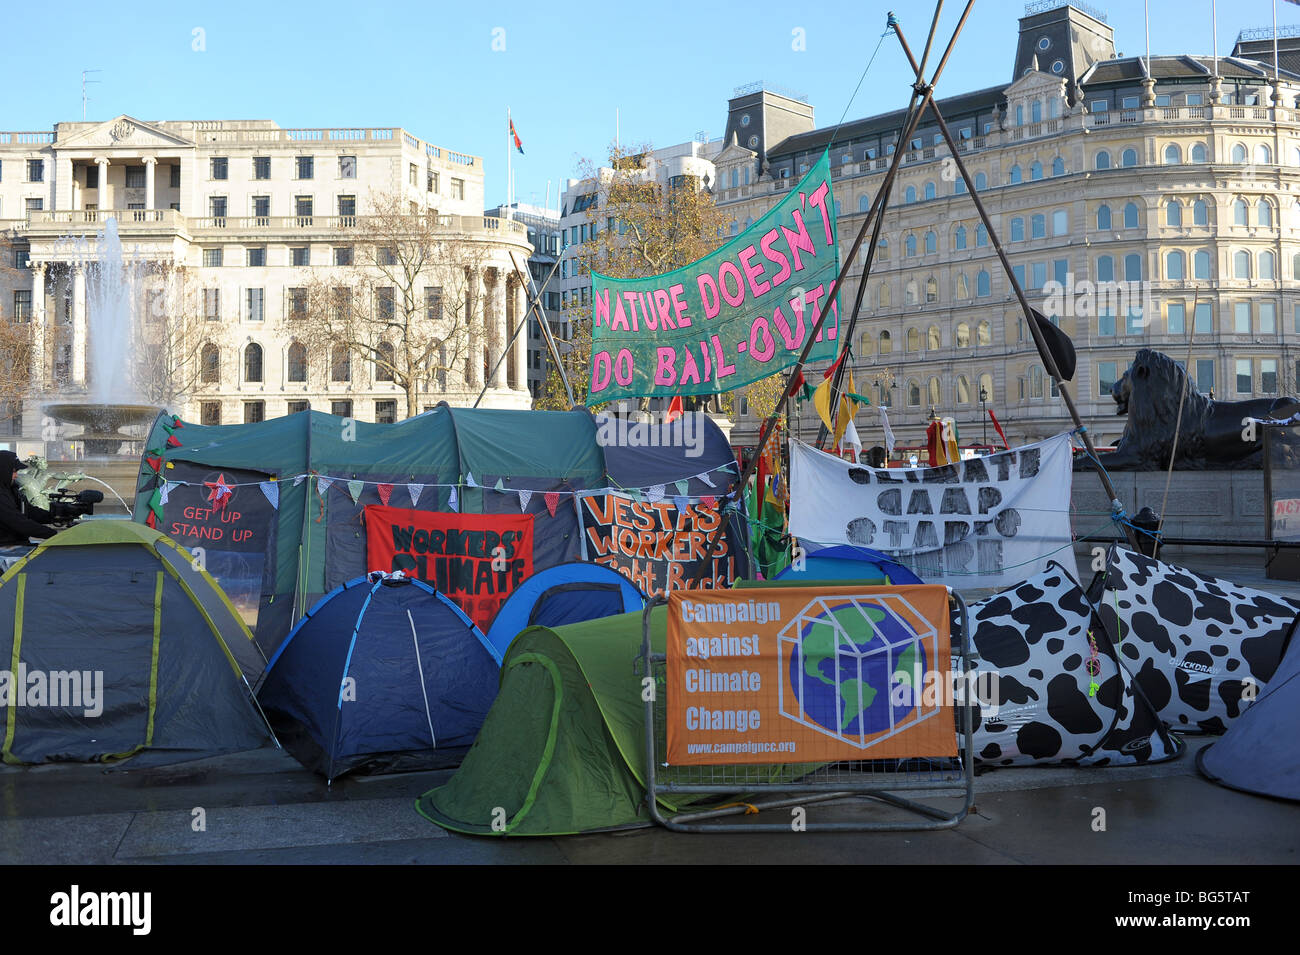 Climate Change Camp in Trafalgar Square, London Stock Photo